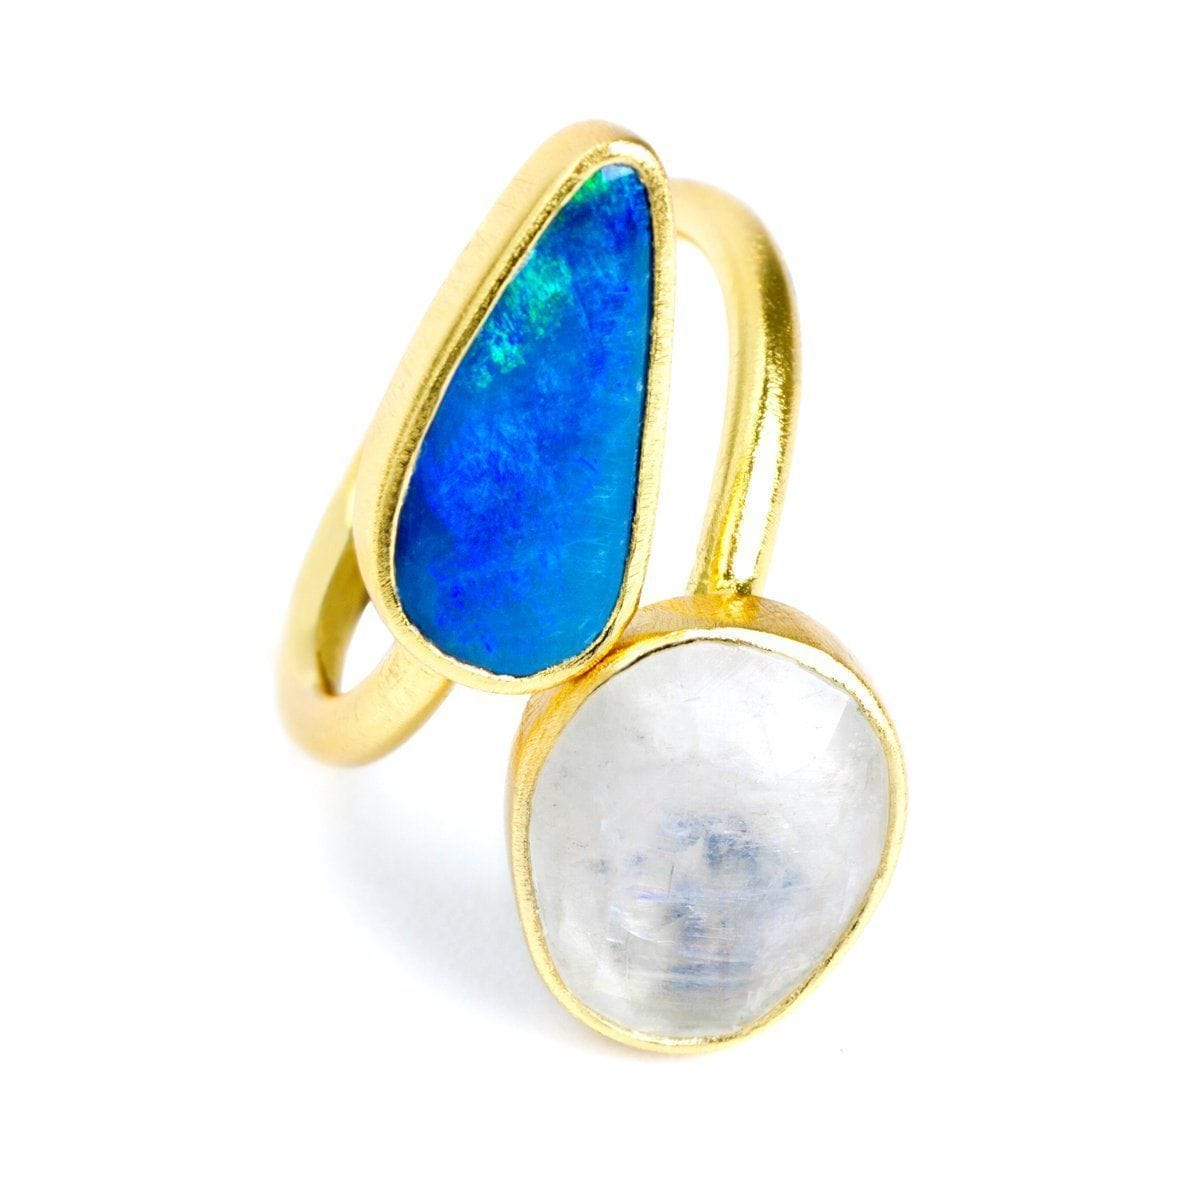 Double Trouble 22k Gold Plated with Opal Ring - G8000R-Nina Nguyen-Renee Taylor Gallery